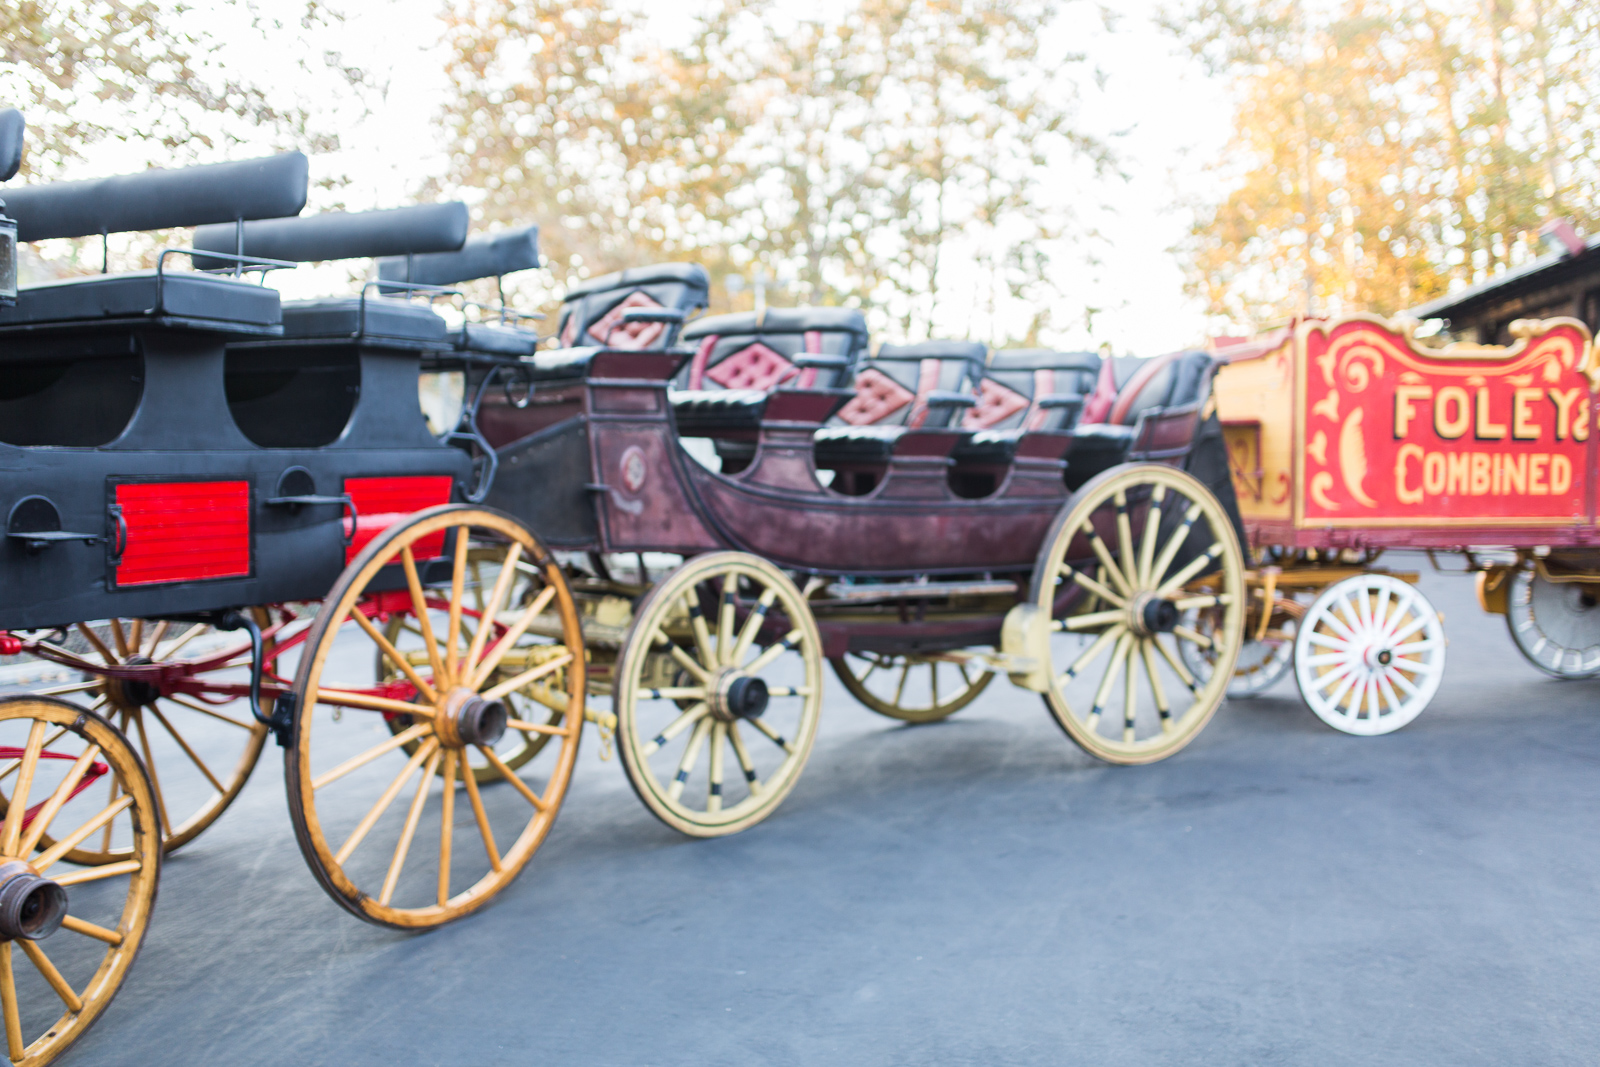 Waggons at old carriage museum wedding reception